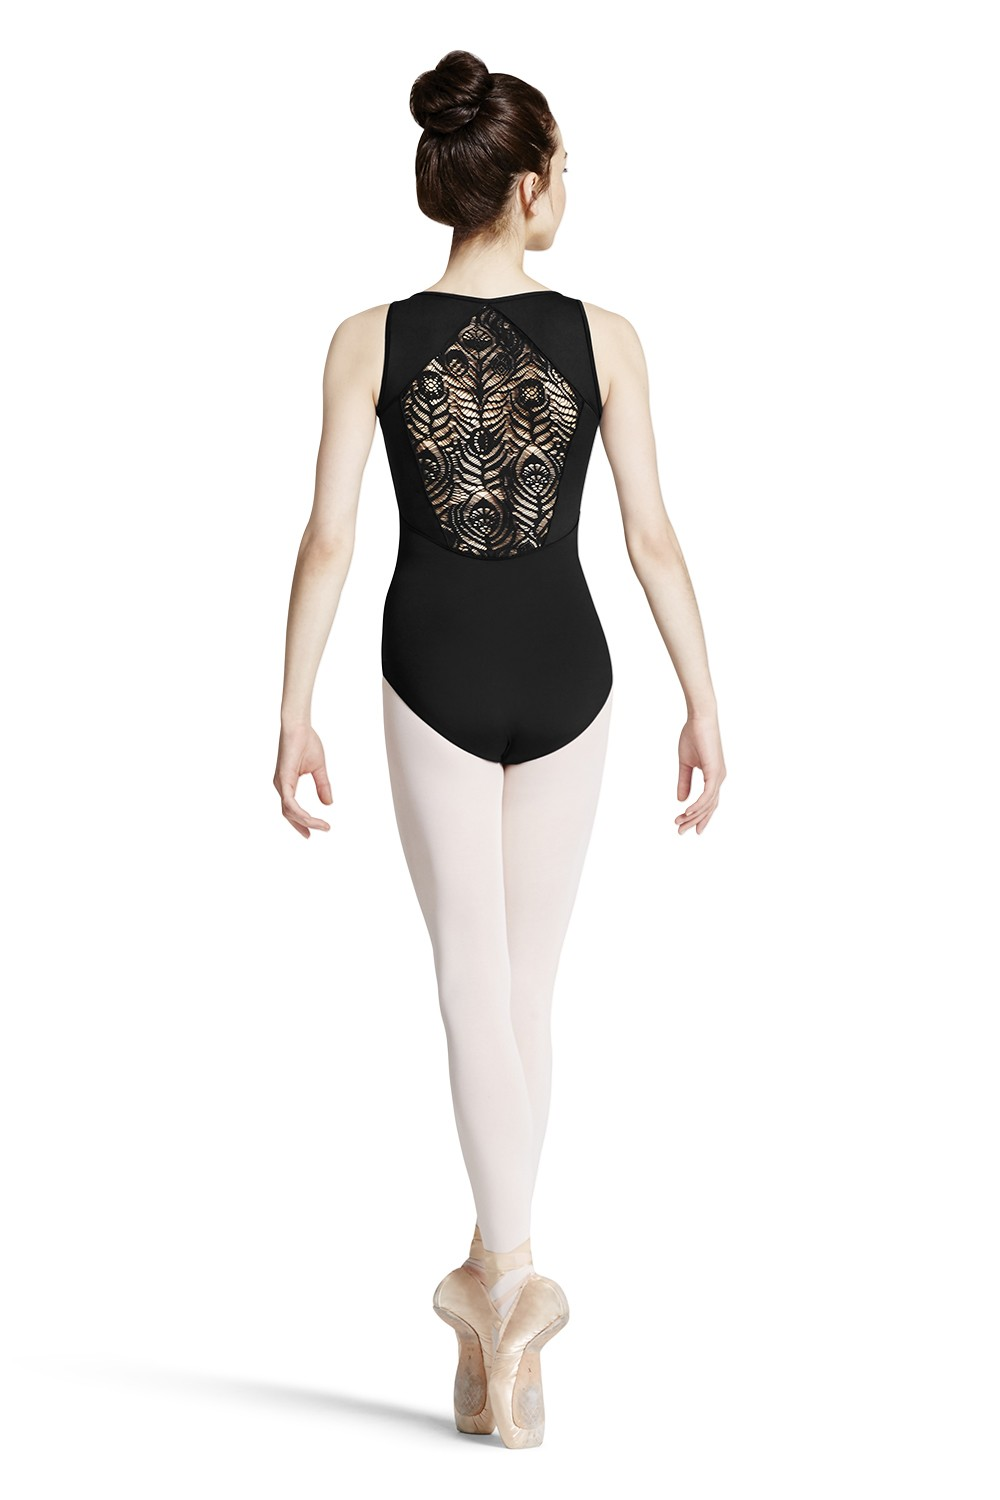 Body A Spallina Larga Con Pizzo A Piuma Di Pavone Women's Dance Leotards